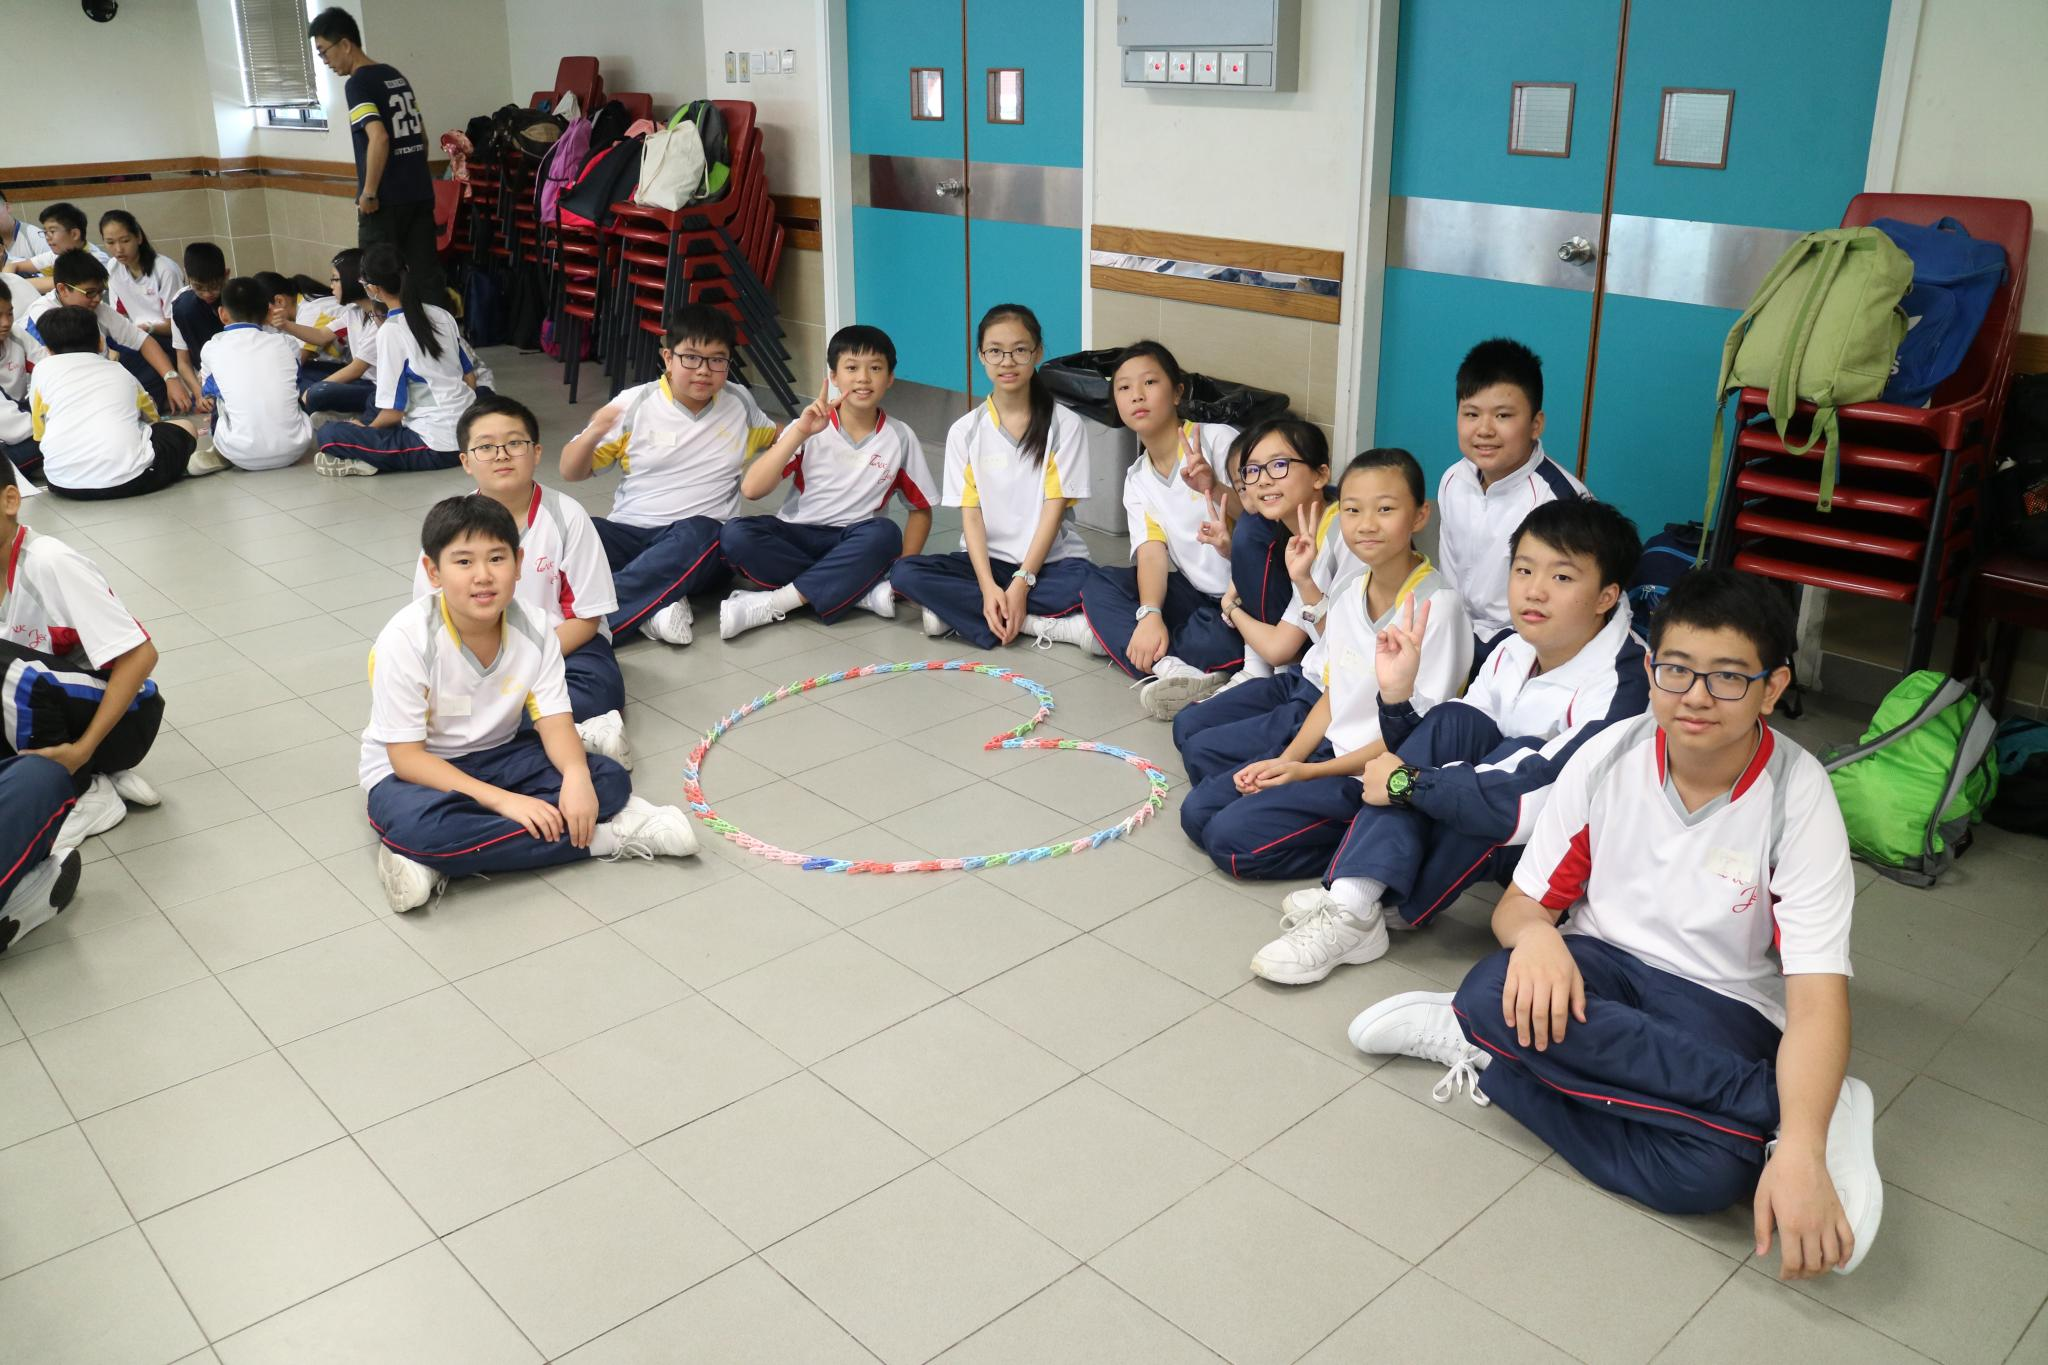 Students enjoyed the activities so much.